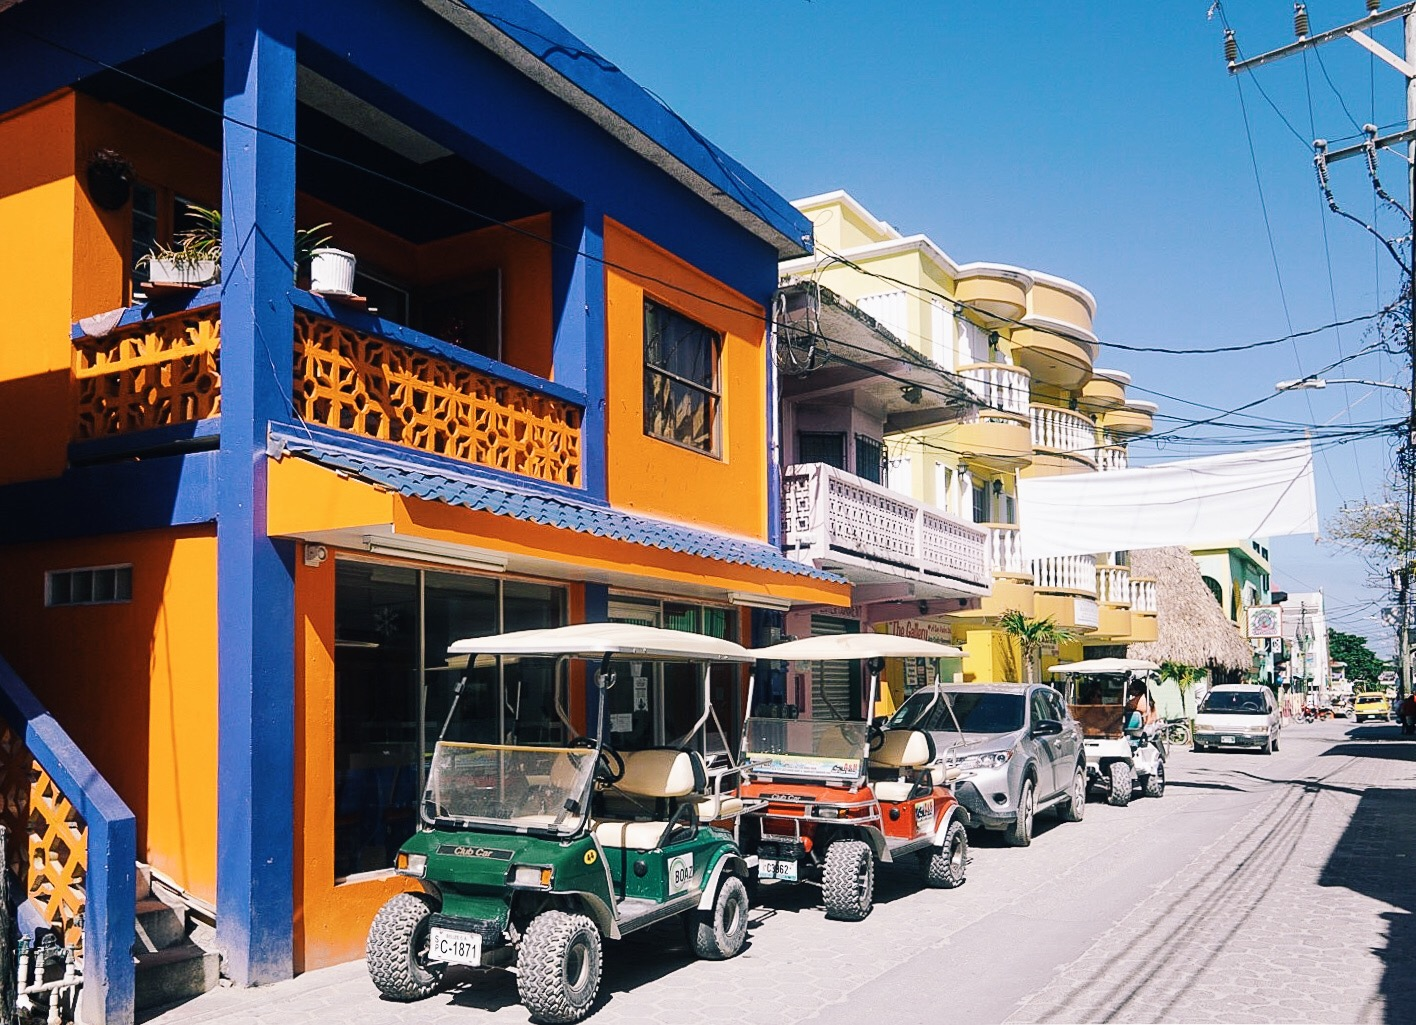 Golf carts are the primary mode of transportation around San Pedro. They're fun to drive and easy to rent for a day. This town probably has the lowest ratio of golf players to golf carts.